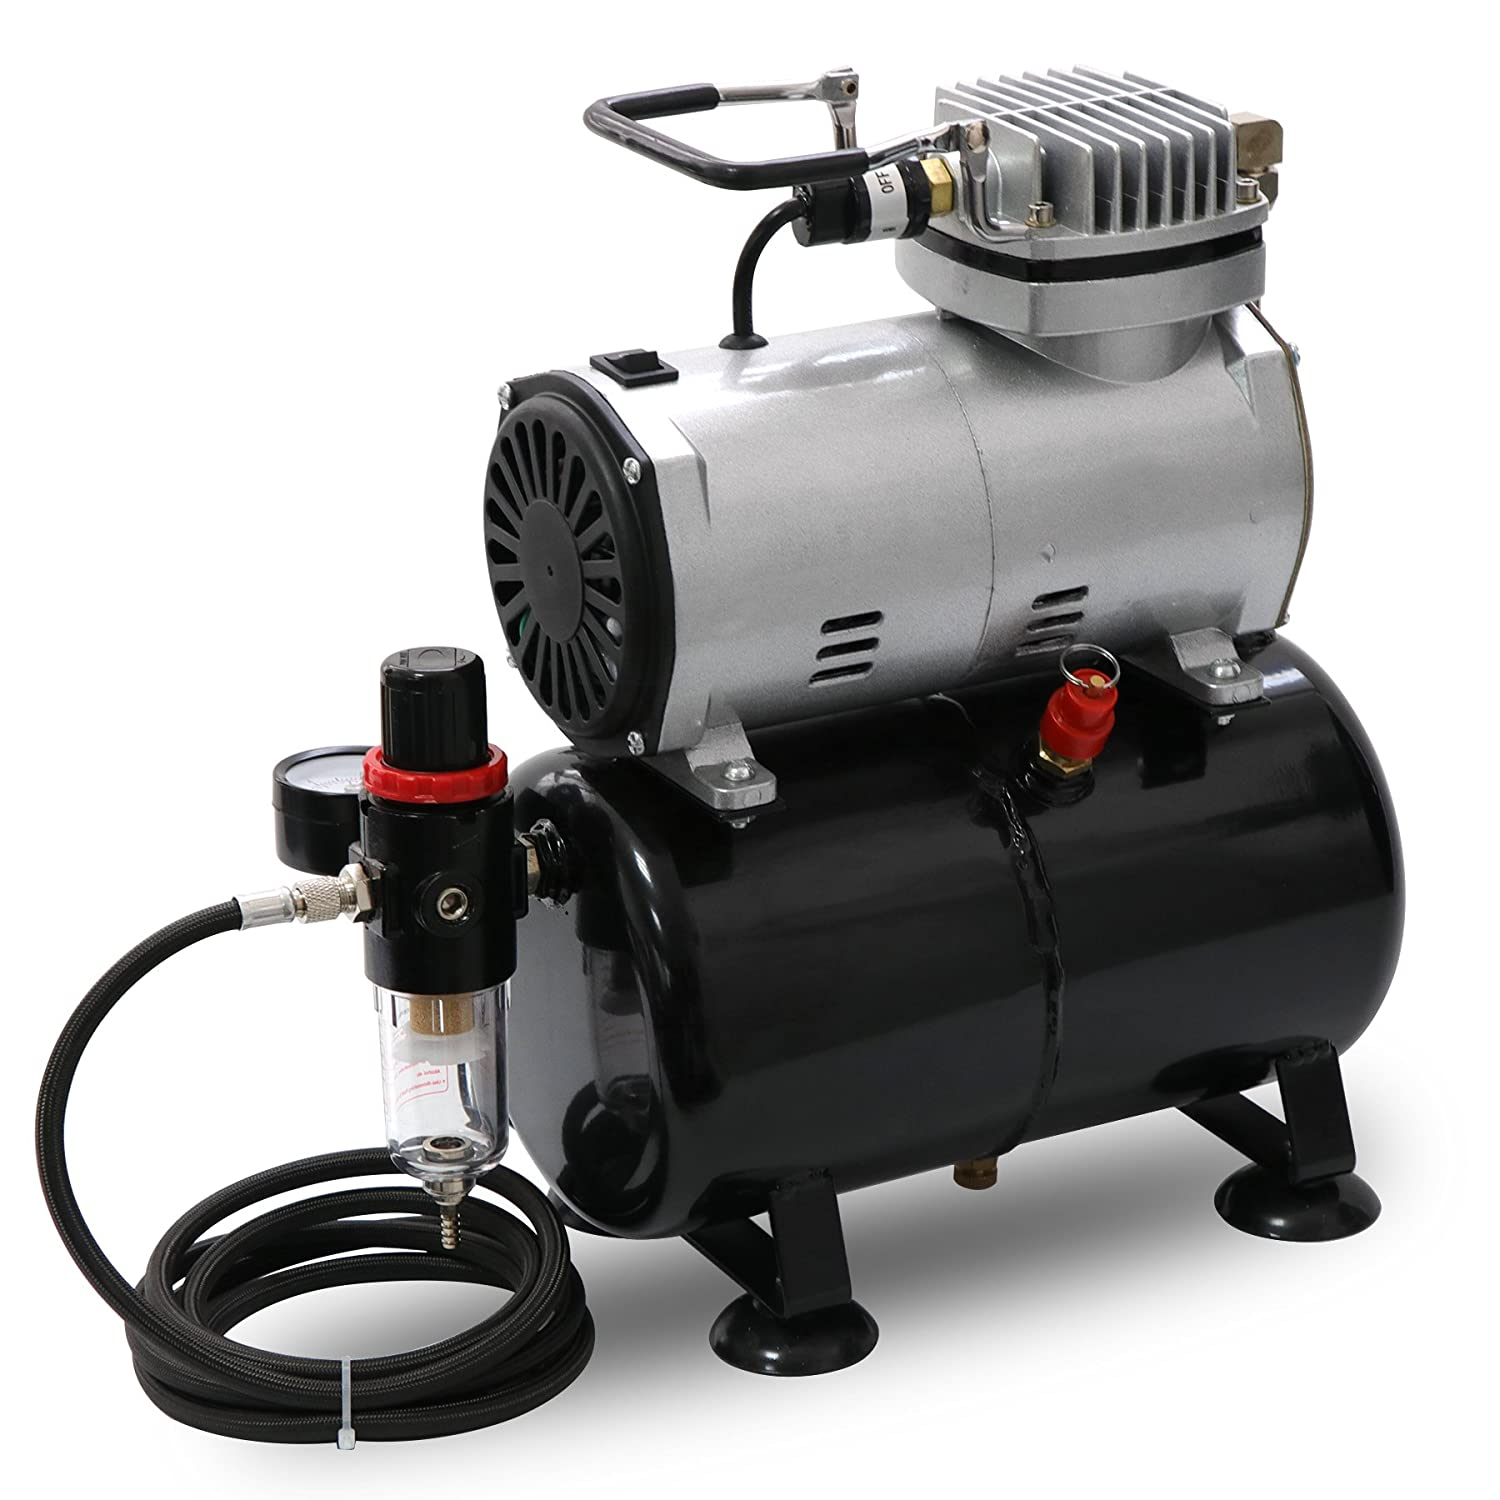 Portable Quiet Airbrush Air Compressor 1/5 HP with Tank, 6 Foot Air Hose, Water Trap and Regulator Best Sunshine